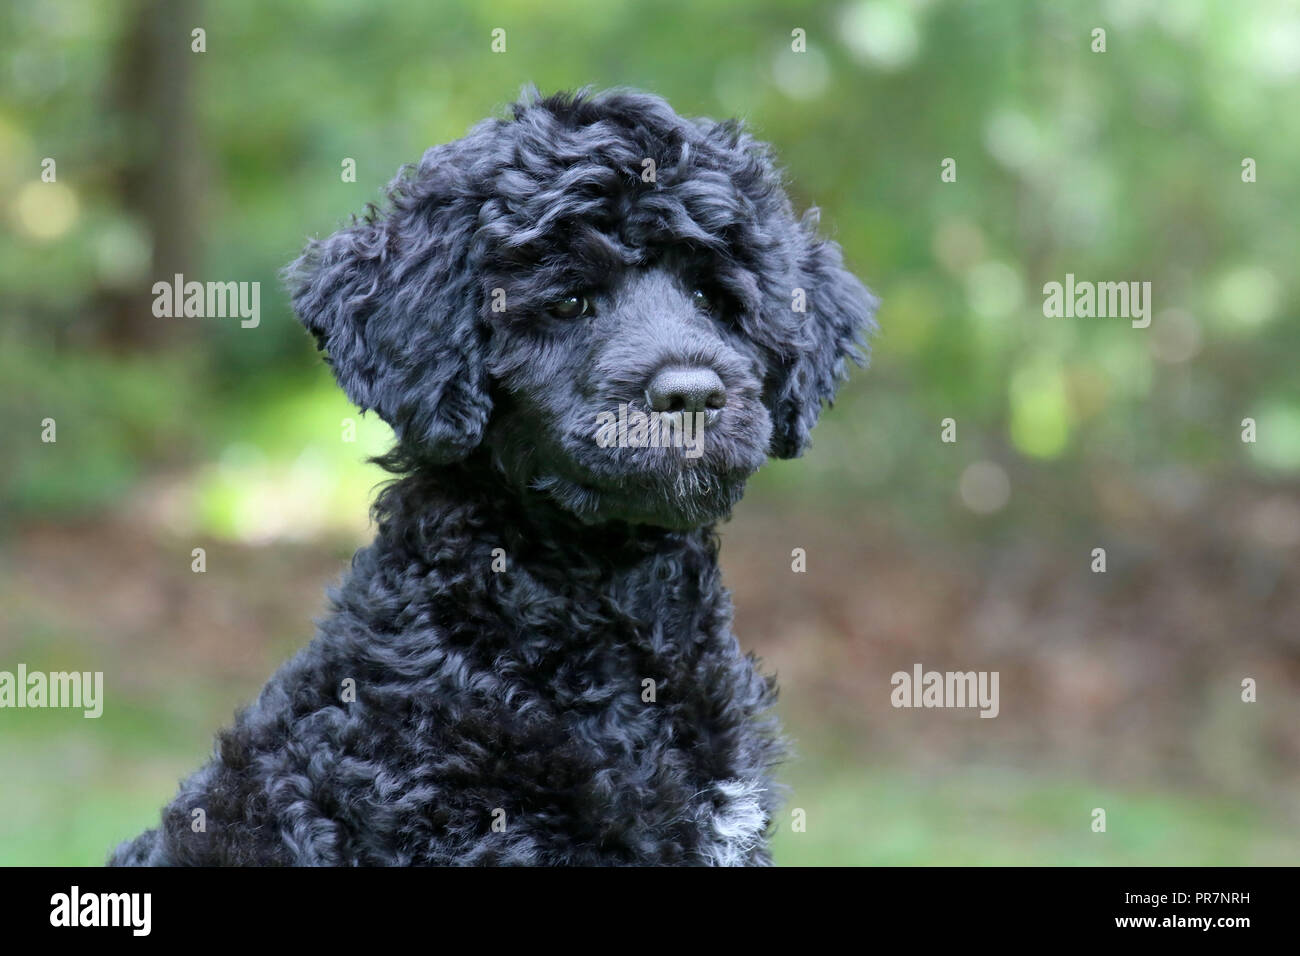 A black Portuguese Water Dog puppy - head and shoulders outside in Fall - Stock Image